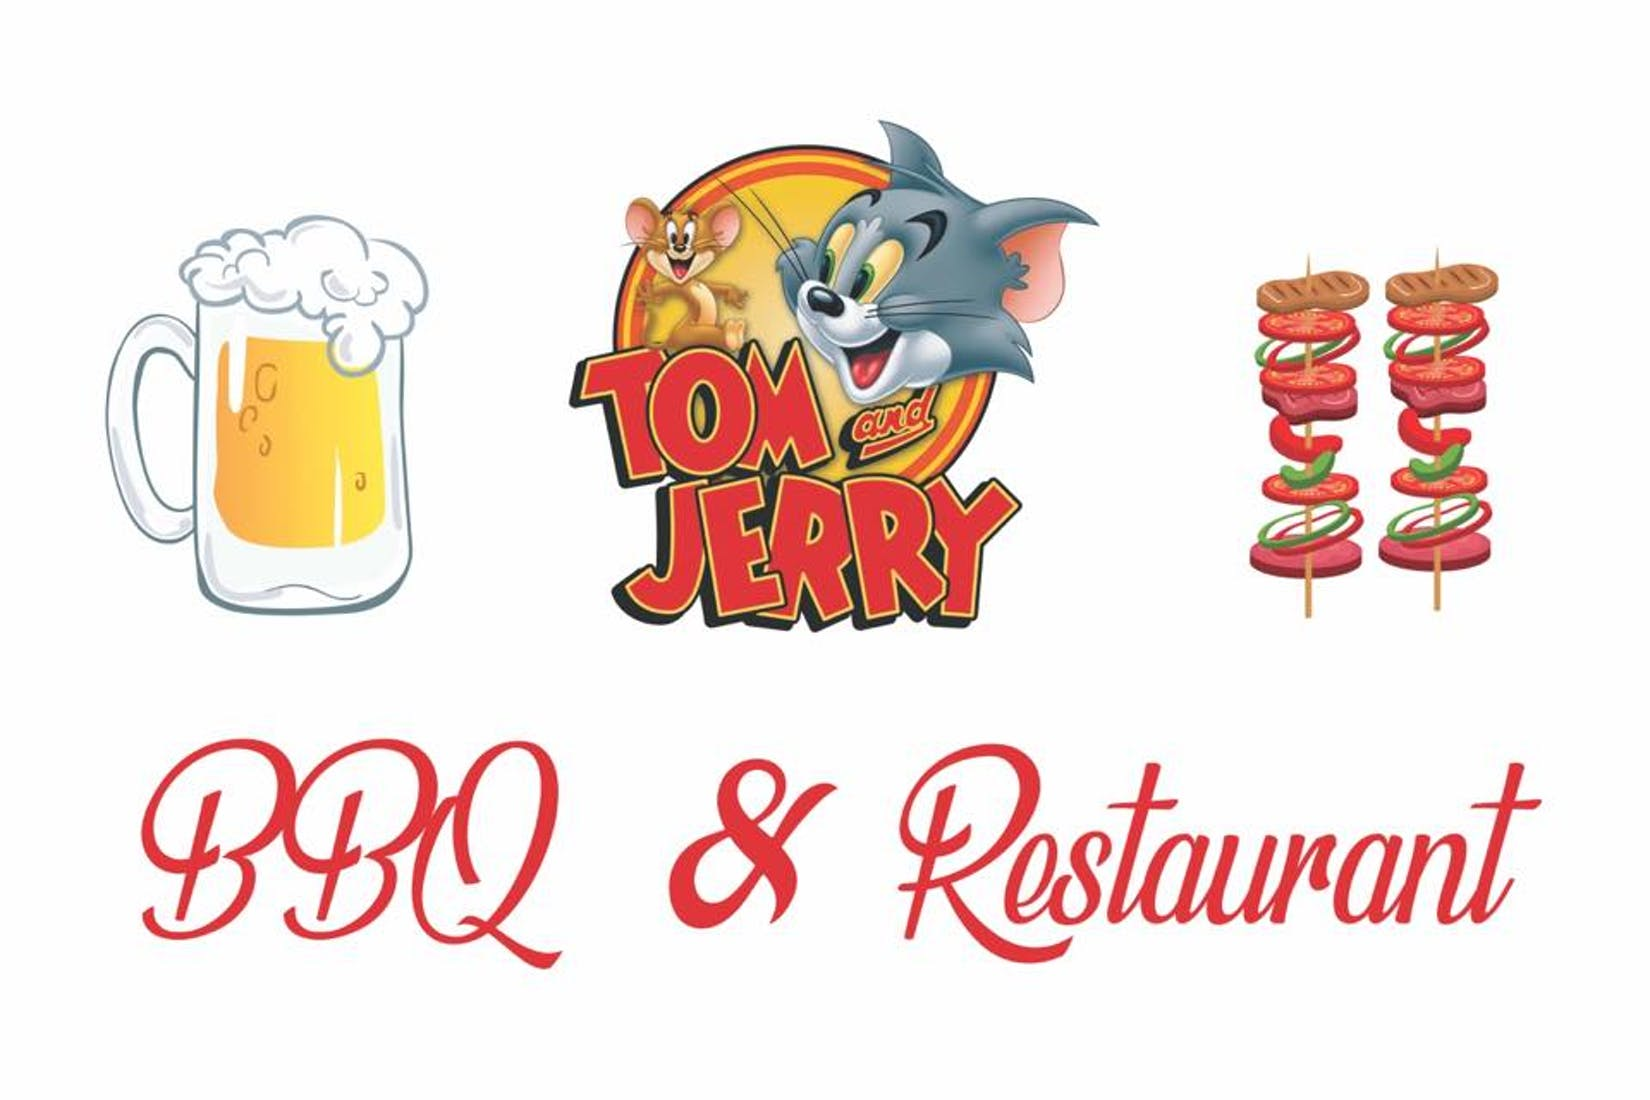 Tom & Jerry BBQ & Restaurant | yathar